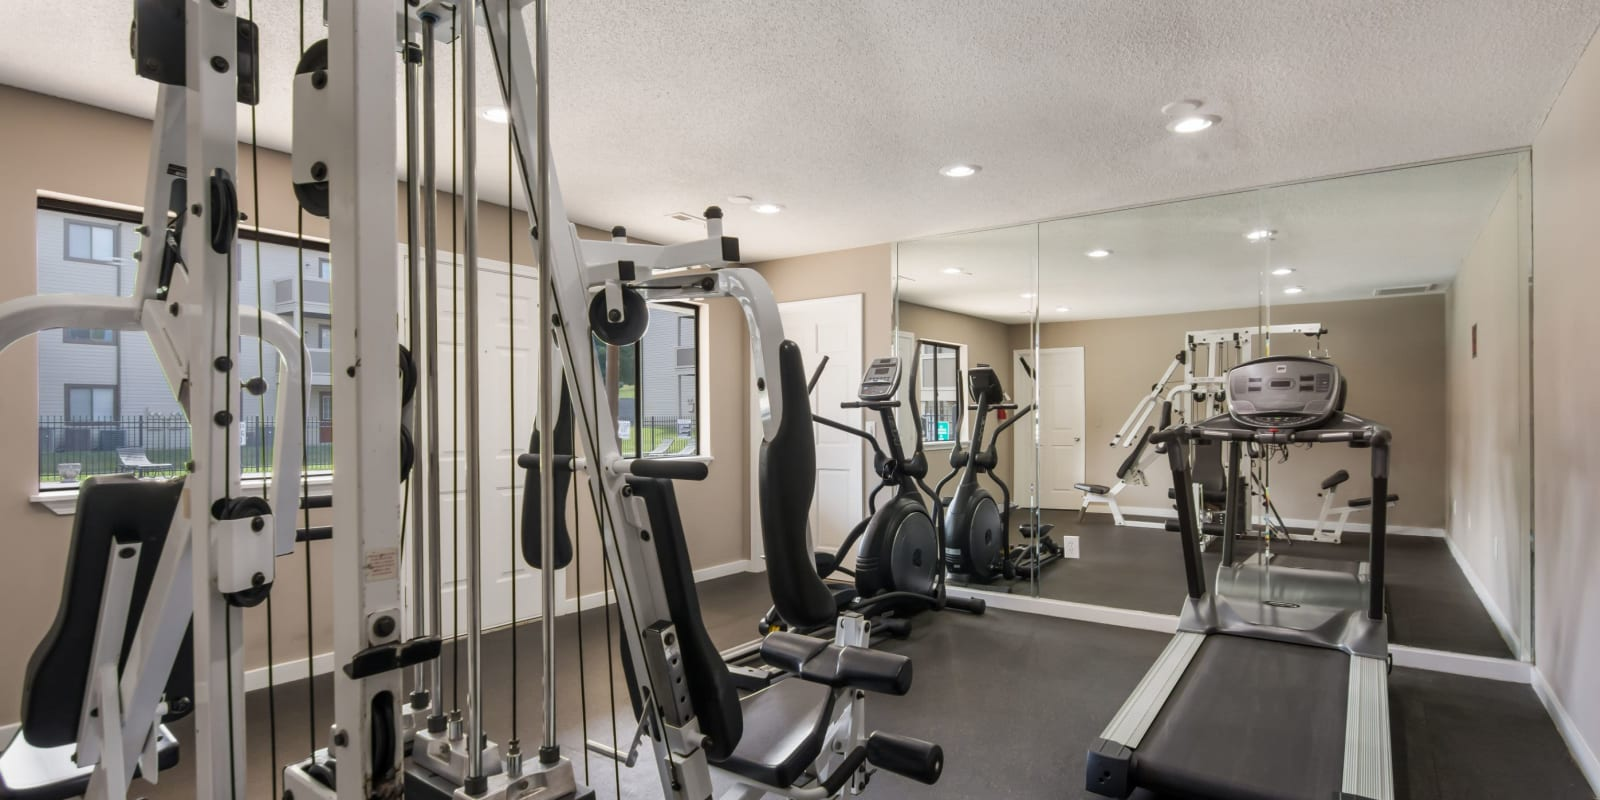 Fitness center with a treadmill at Gable Oaks Apartment Homes in Rock Hill, South Carolina